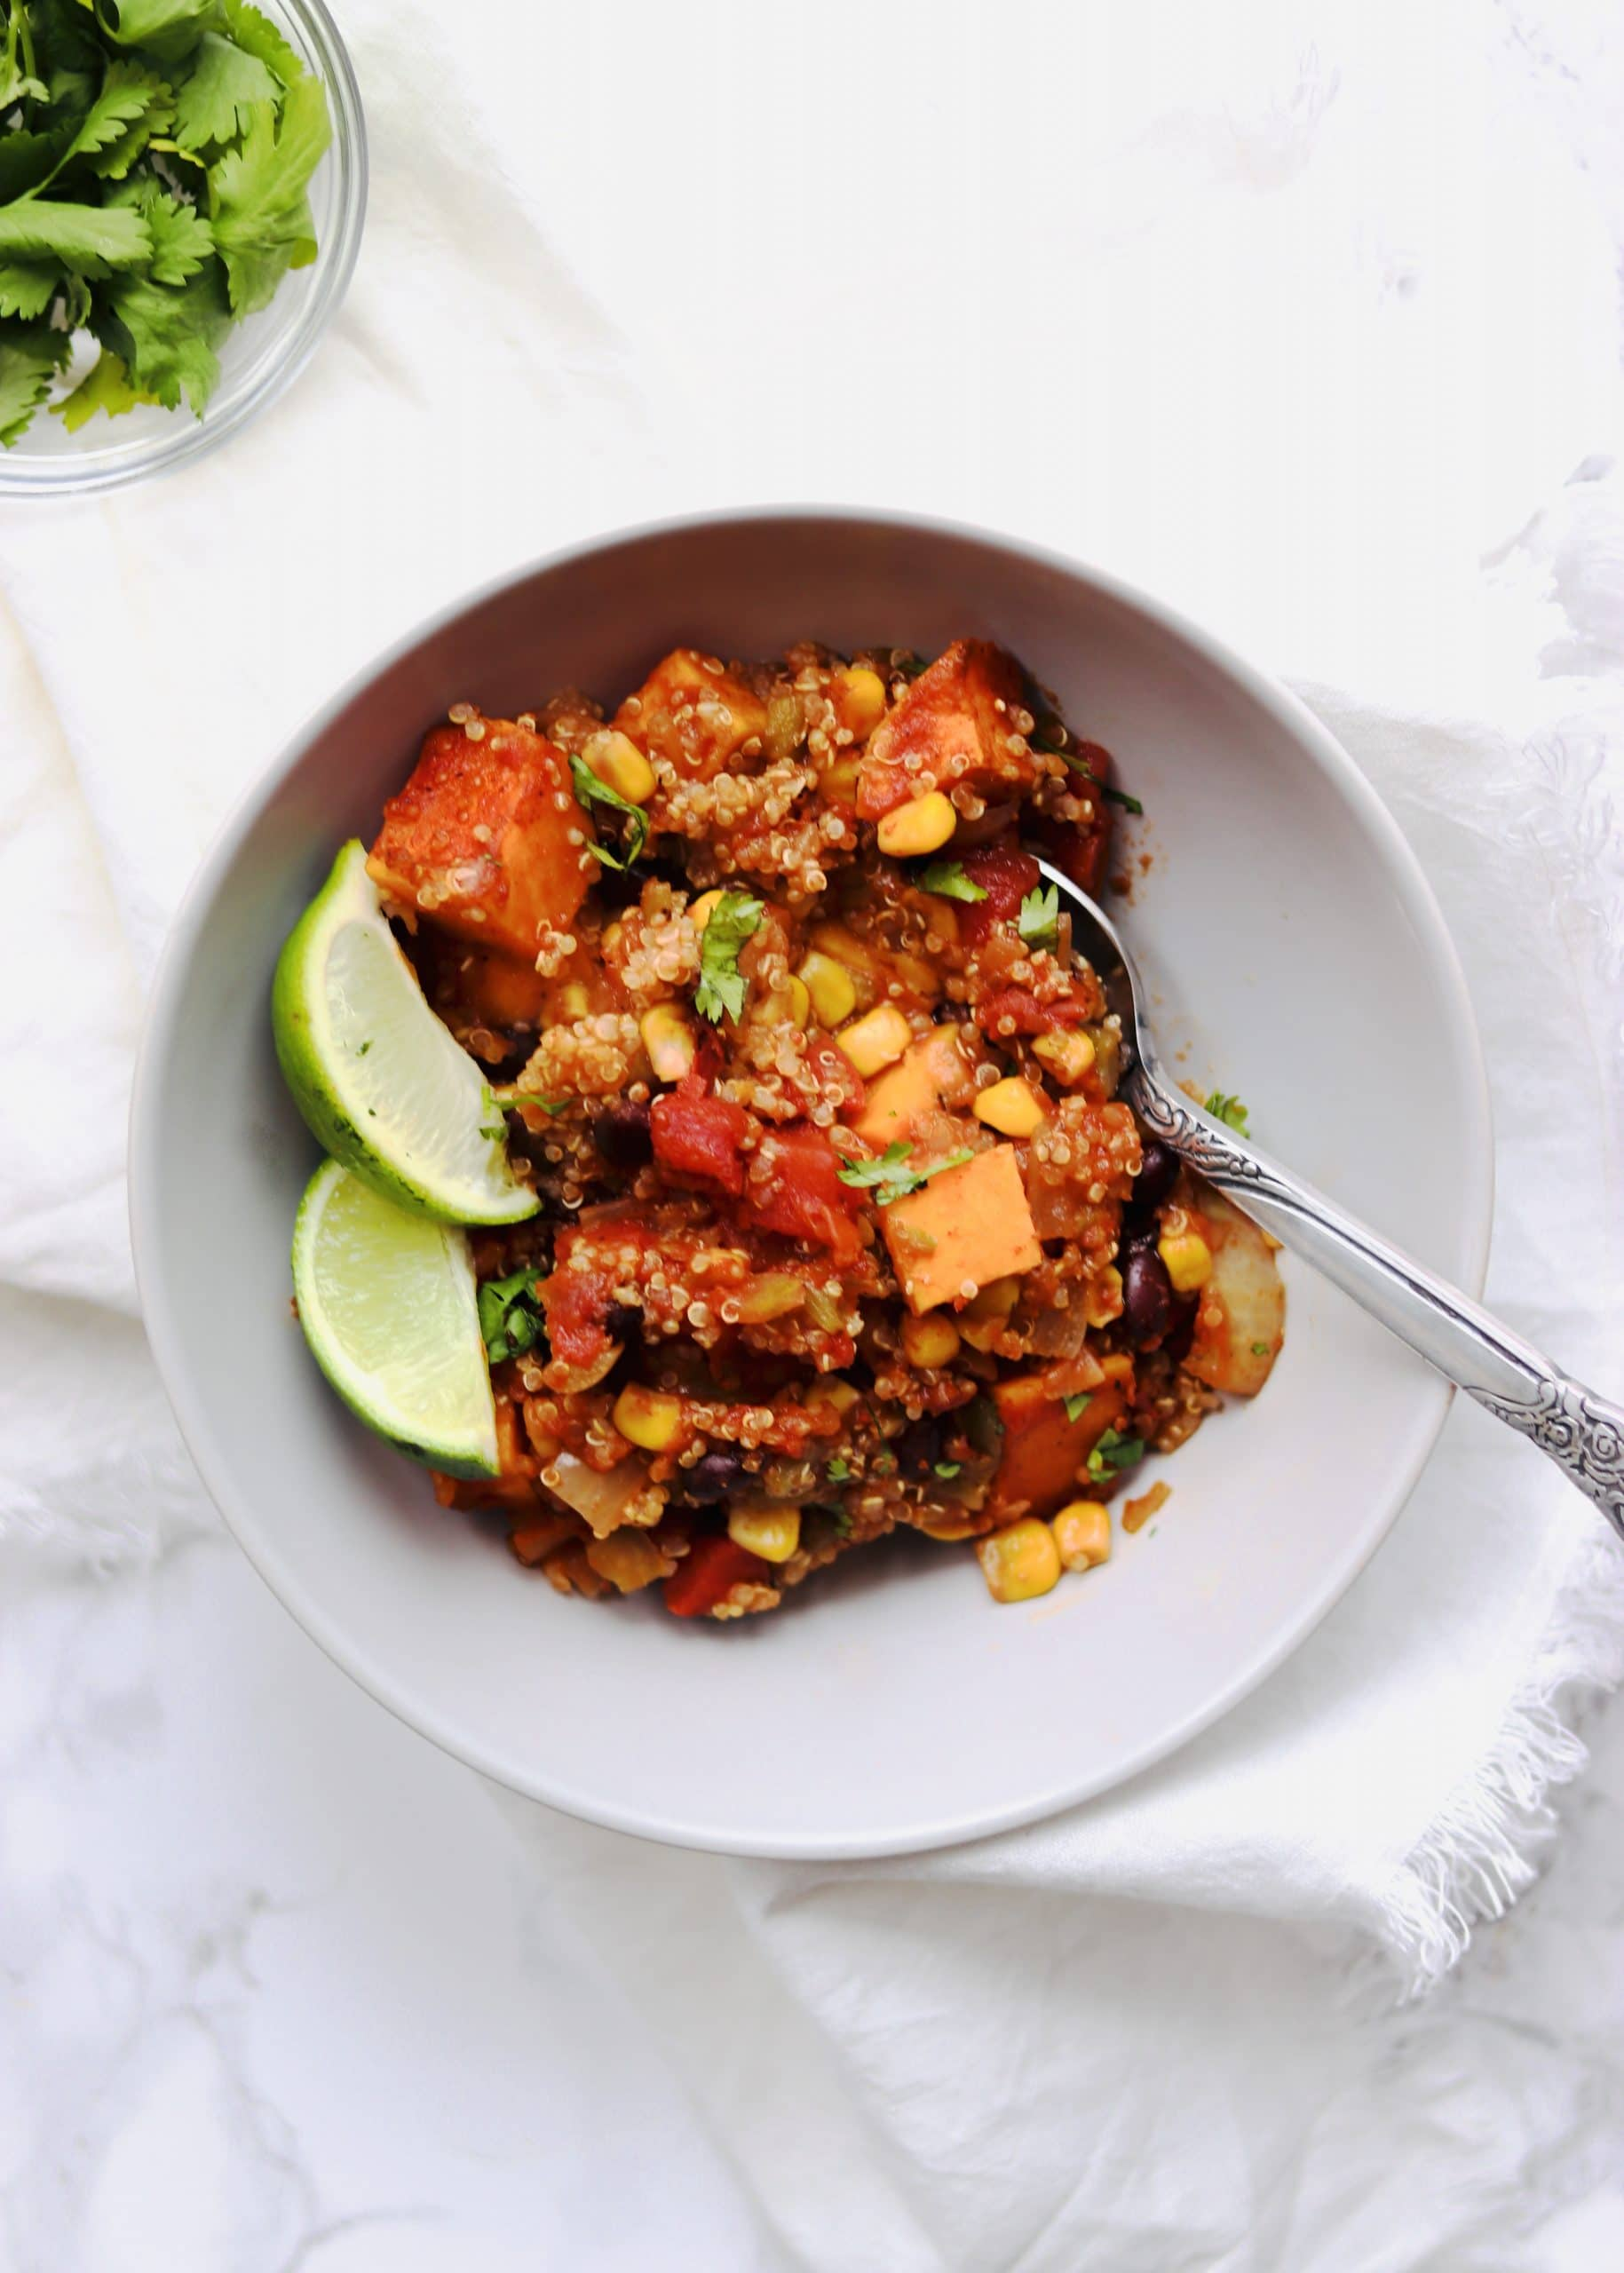 Vegan Mexican Quinoa Bake is healthy, filling, and uses all pantry staple ingredients! It takes just minutes of prep then into the oven to bake. This casserole is family friendly, perfect for Meatless Monday, or for a healthy meal prep.